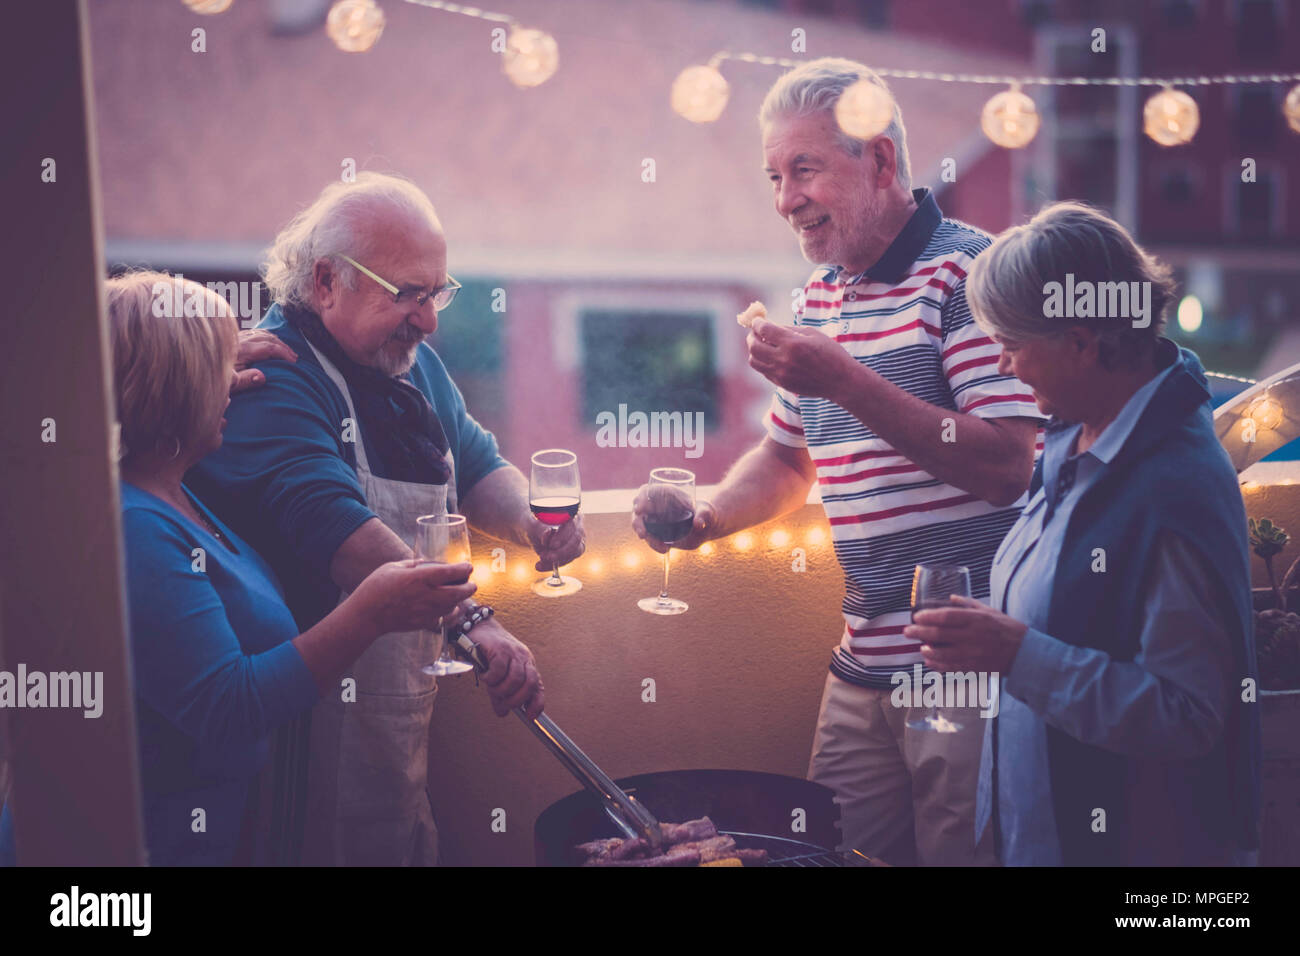 barbeque bbq and some wine to celebrate an event. group of adult people enjoy lifestyle outdoor in the terrace with city view. eat meal and drink wine - Stock Image